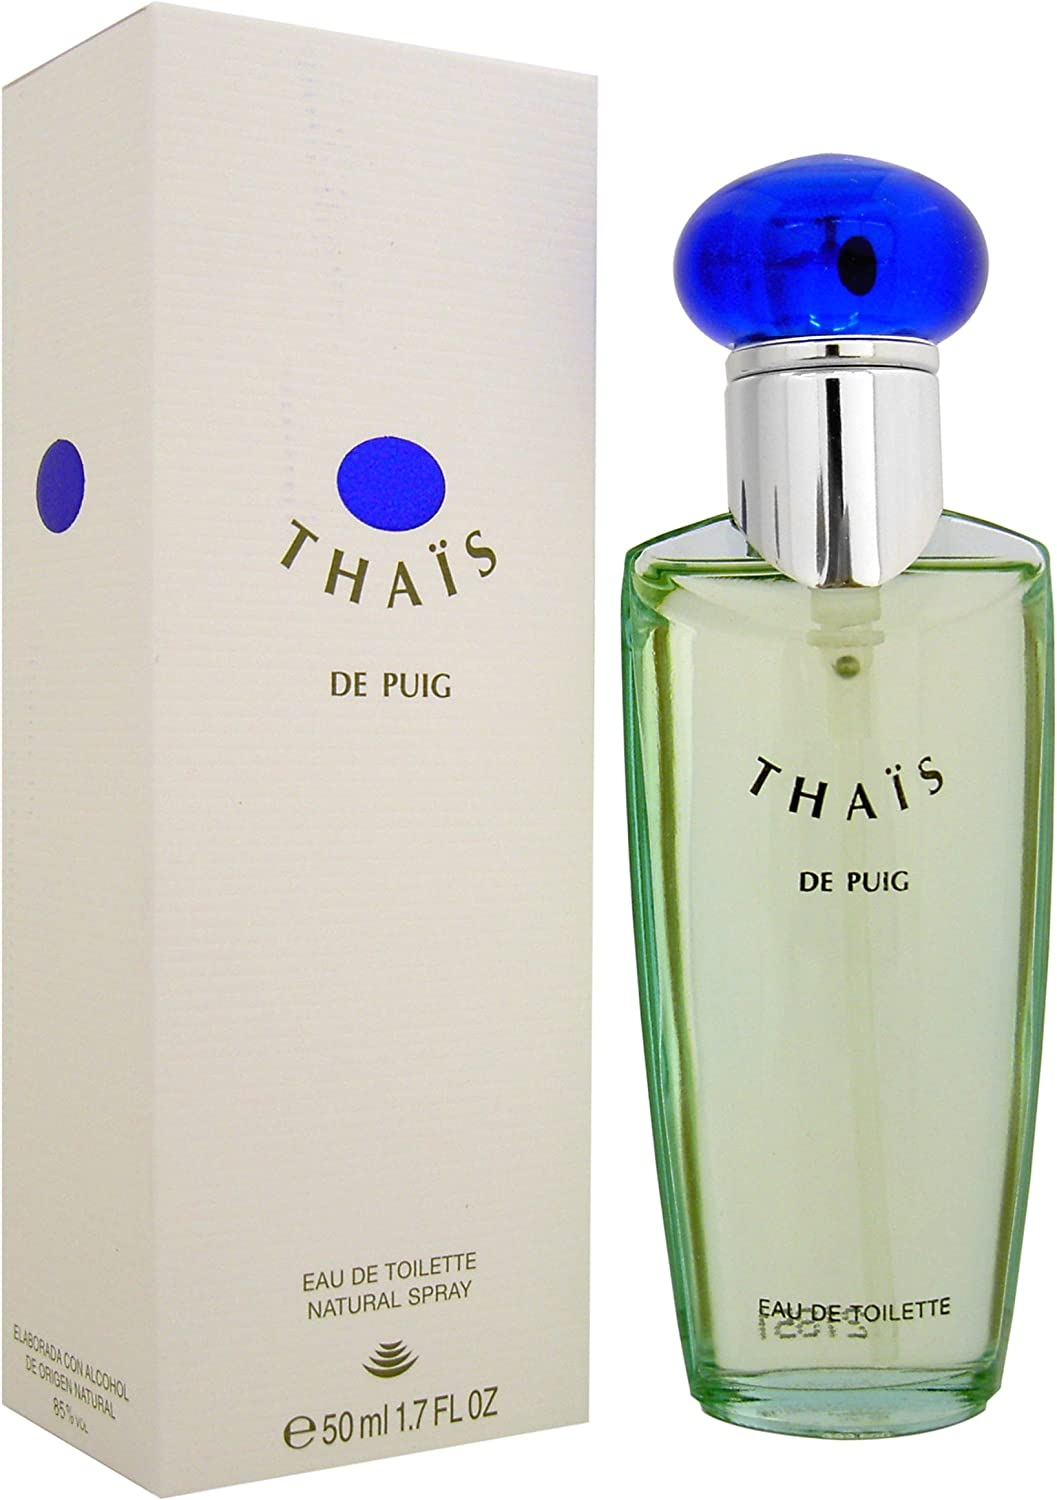 Thais eau de toilette 50 ml natural spray NEW: Amazon.es: Belleza